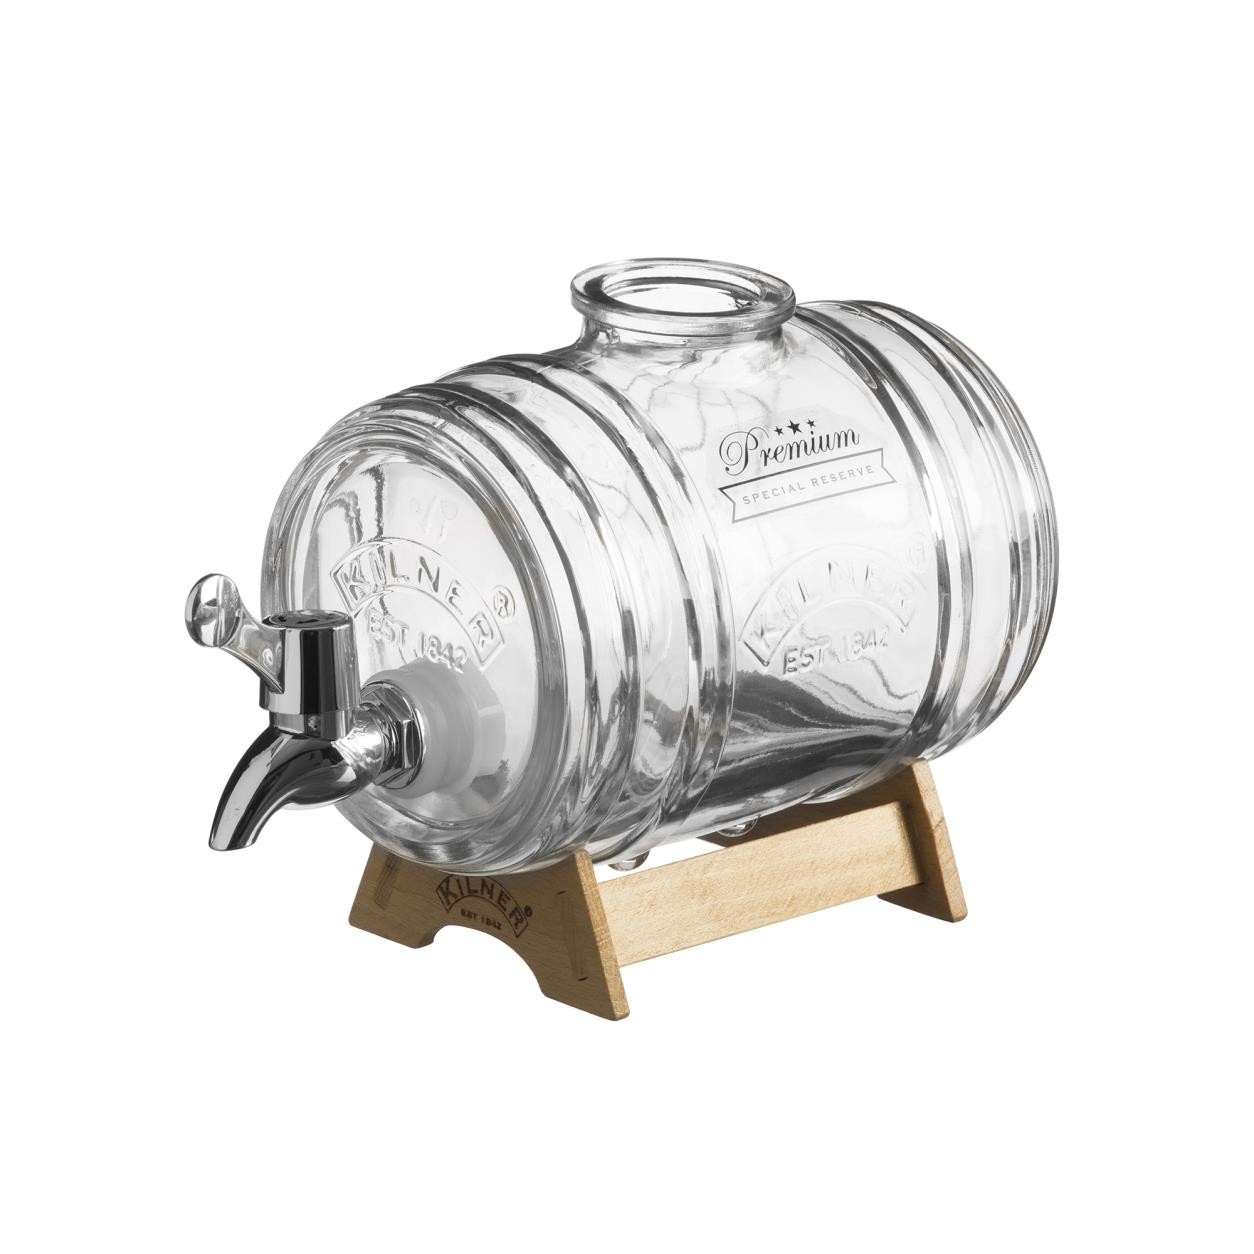 BARREL DISPENSER 34 FL OZ